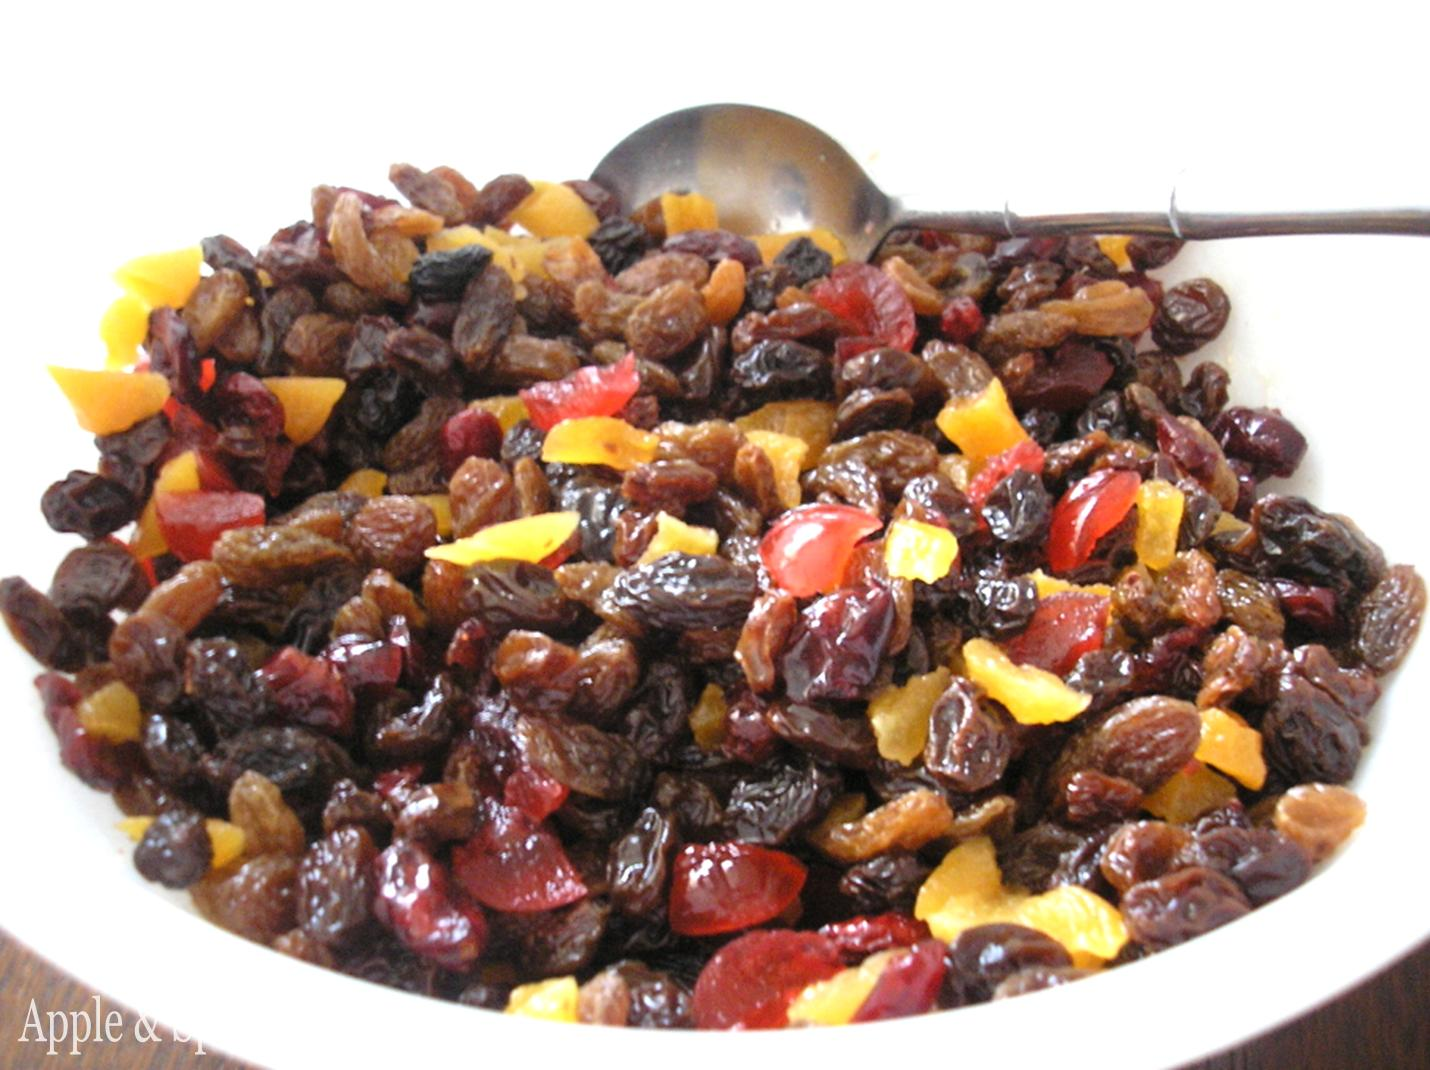 Apple & Spice: Gluten Free Spiced Christmas Fruit Cake with Rum